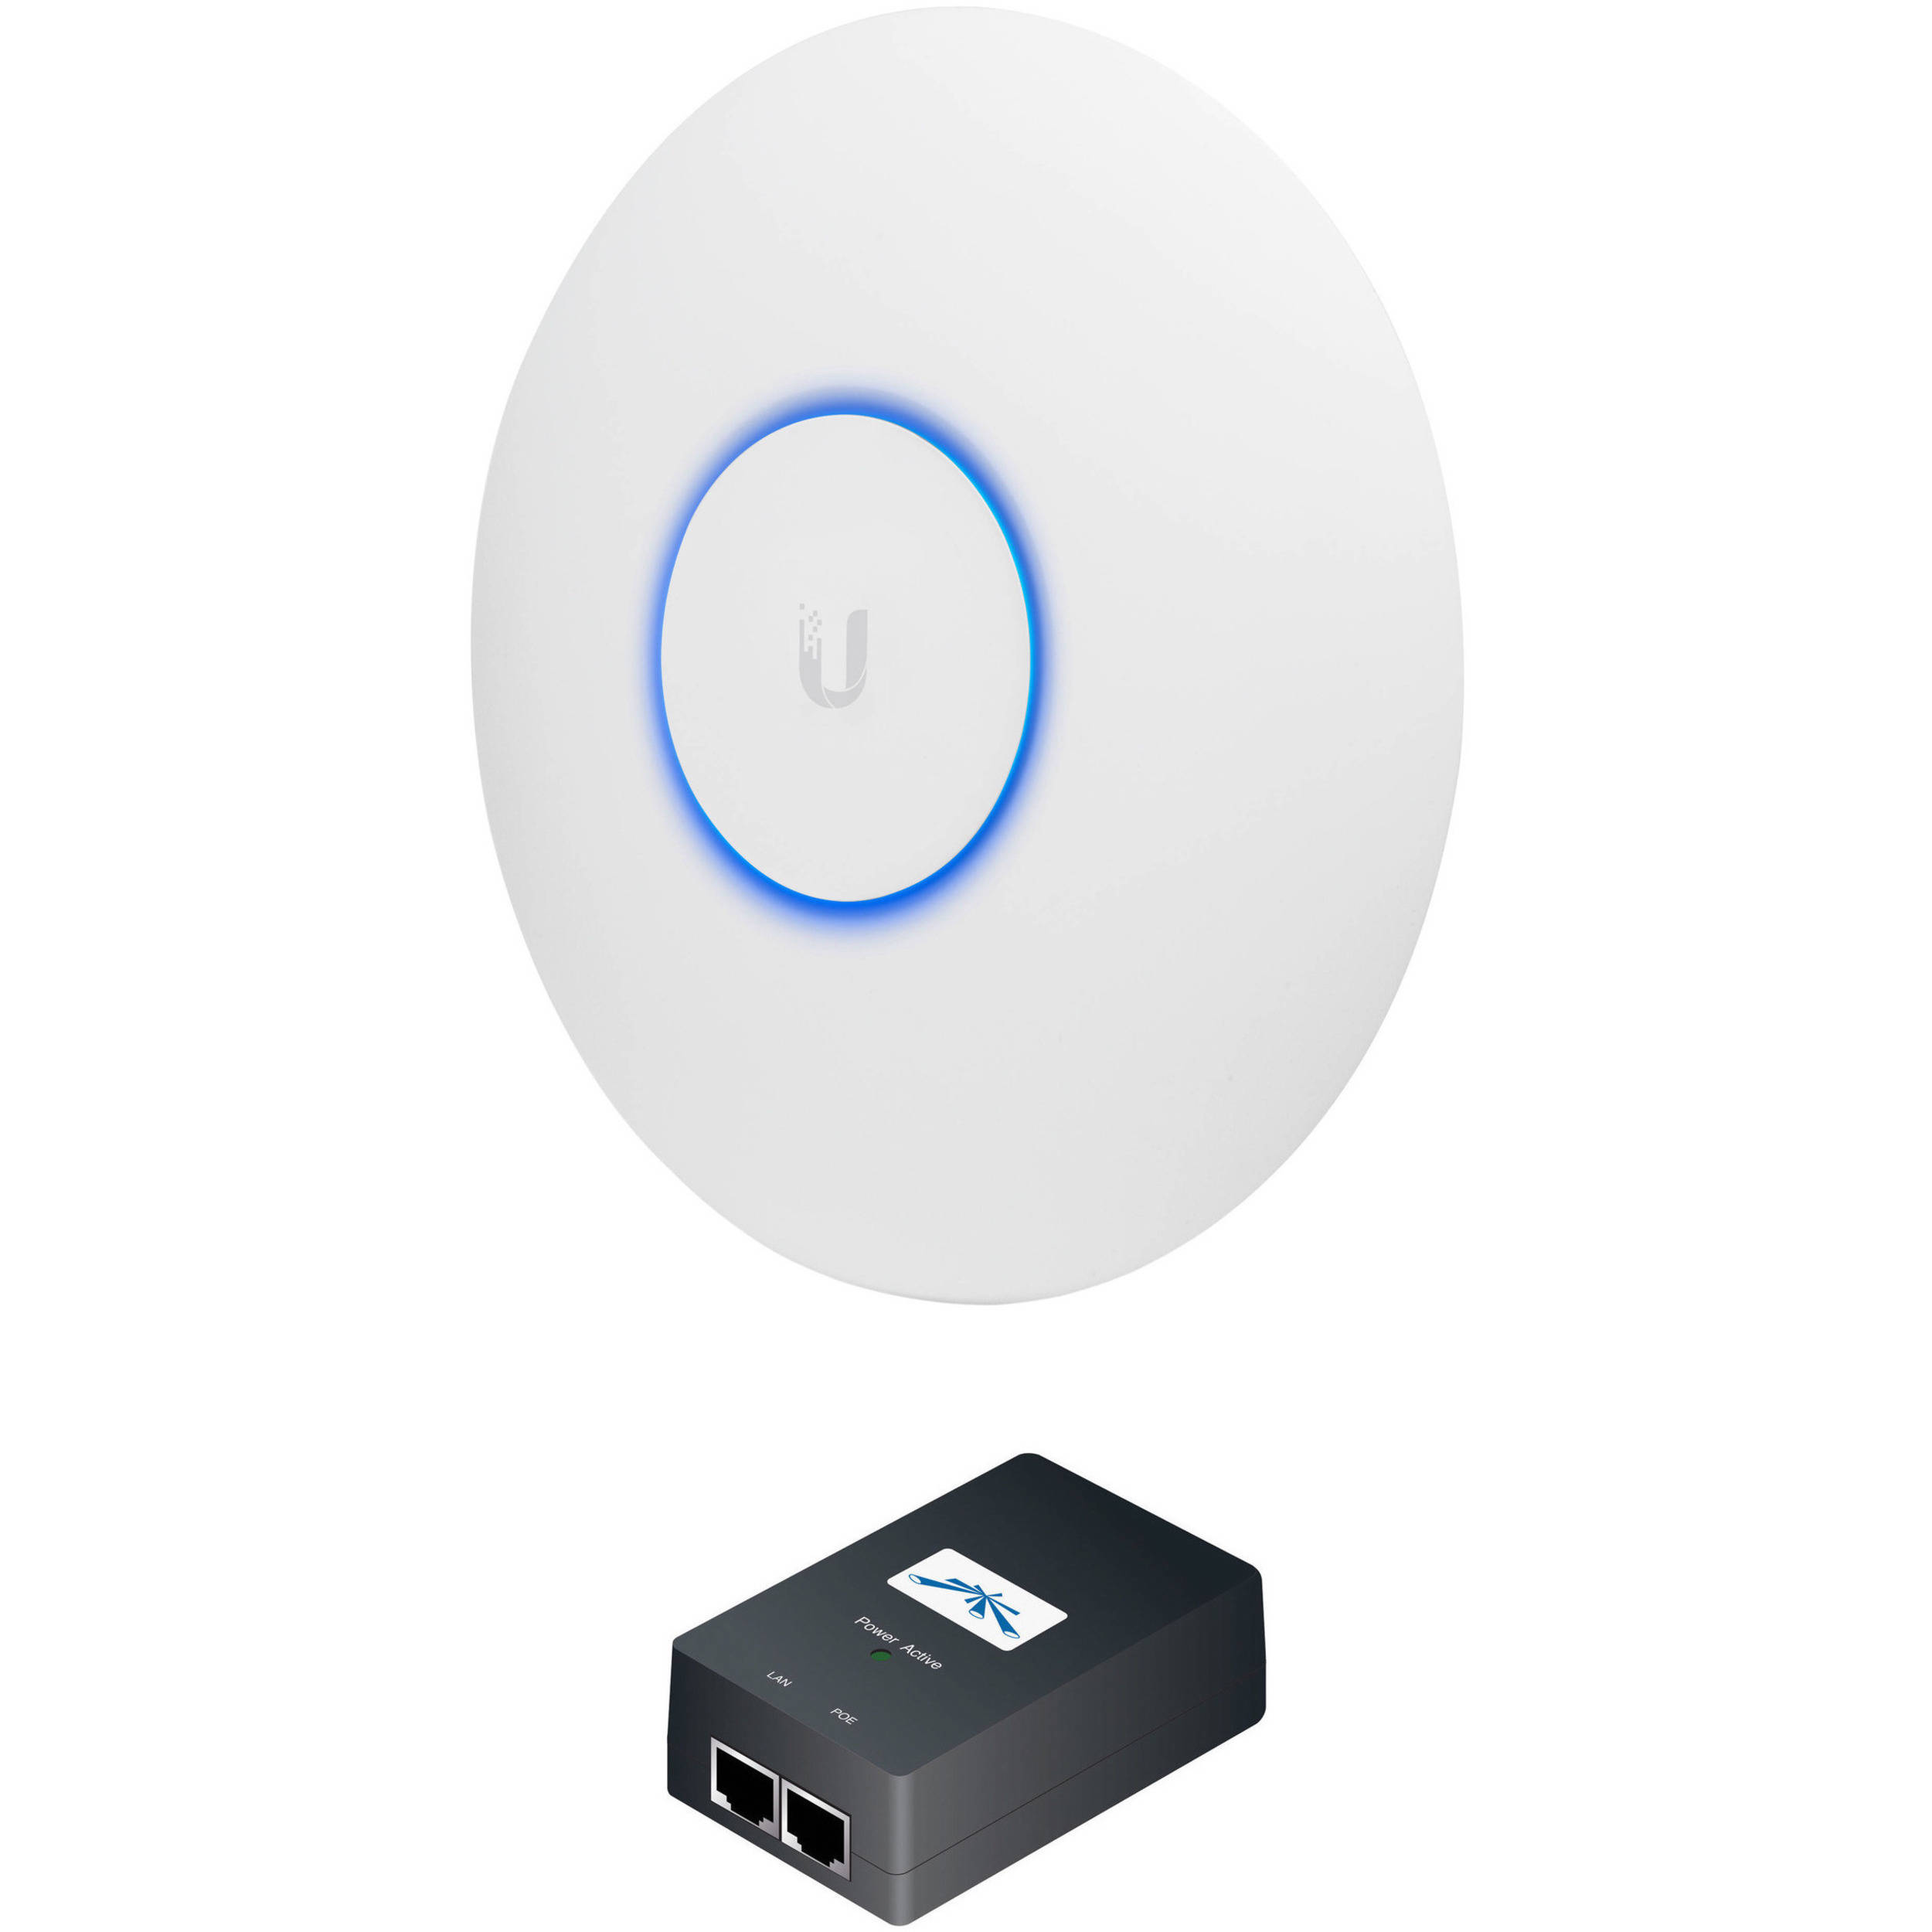 UAP-AC Ubiquiti UniFi AP-AC Wireless Access Point with POE Injector